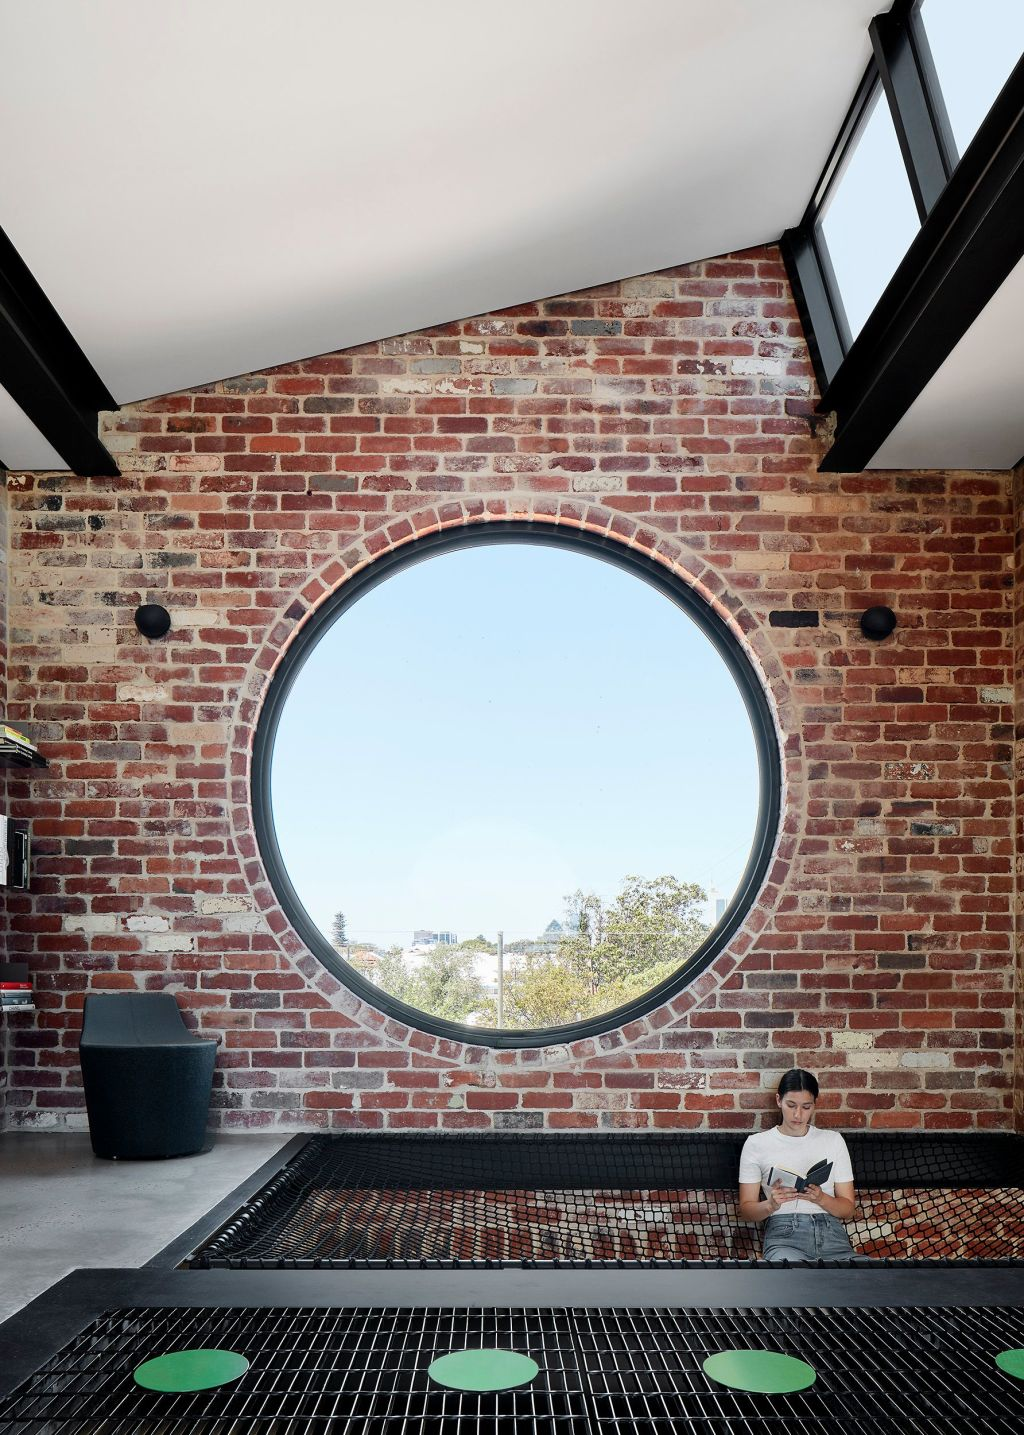 From_inside_and_with_a_big_circular_window_and_suspended_net_for_hanging_out_on_Brick_House_signals_it_s_intention_to_be_playful._Photo_Jack_Lovel_ovrwb1